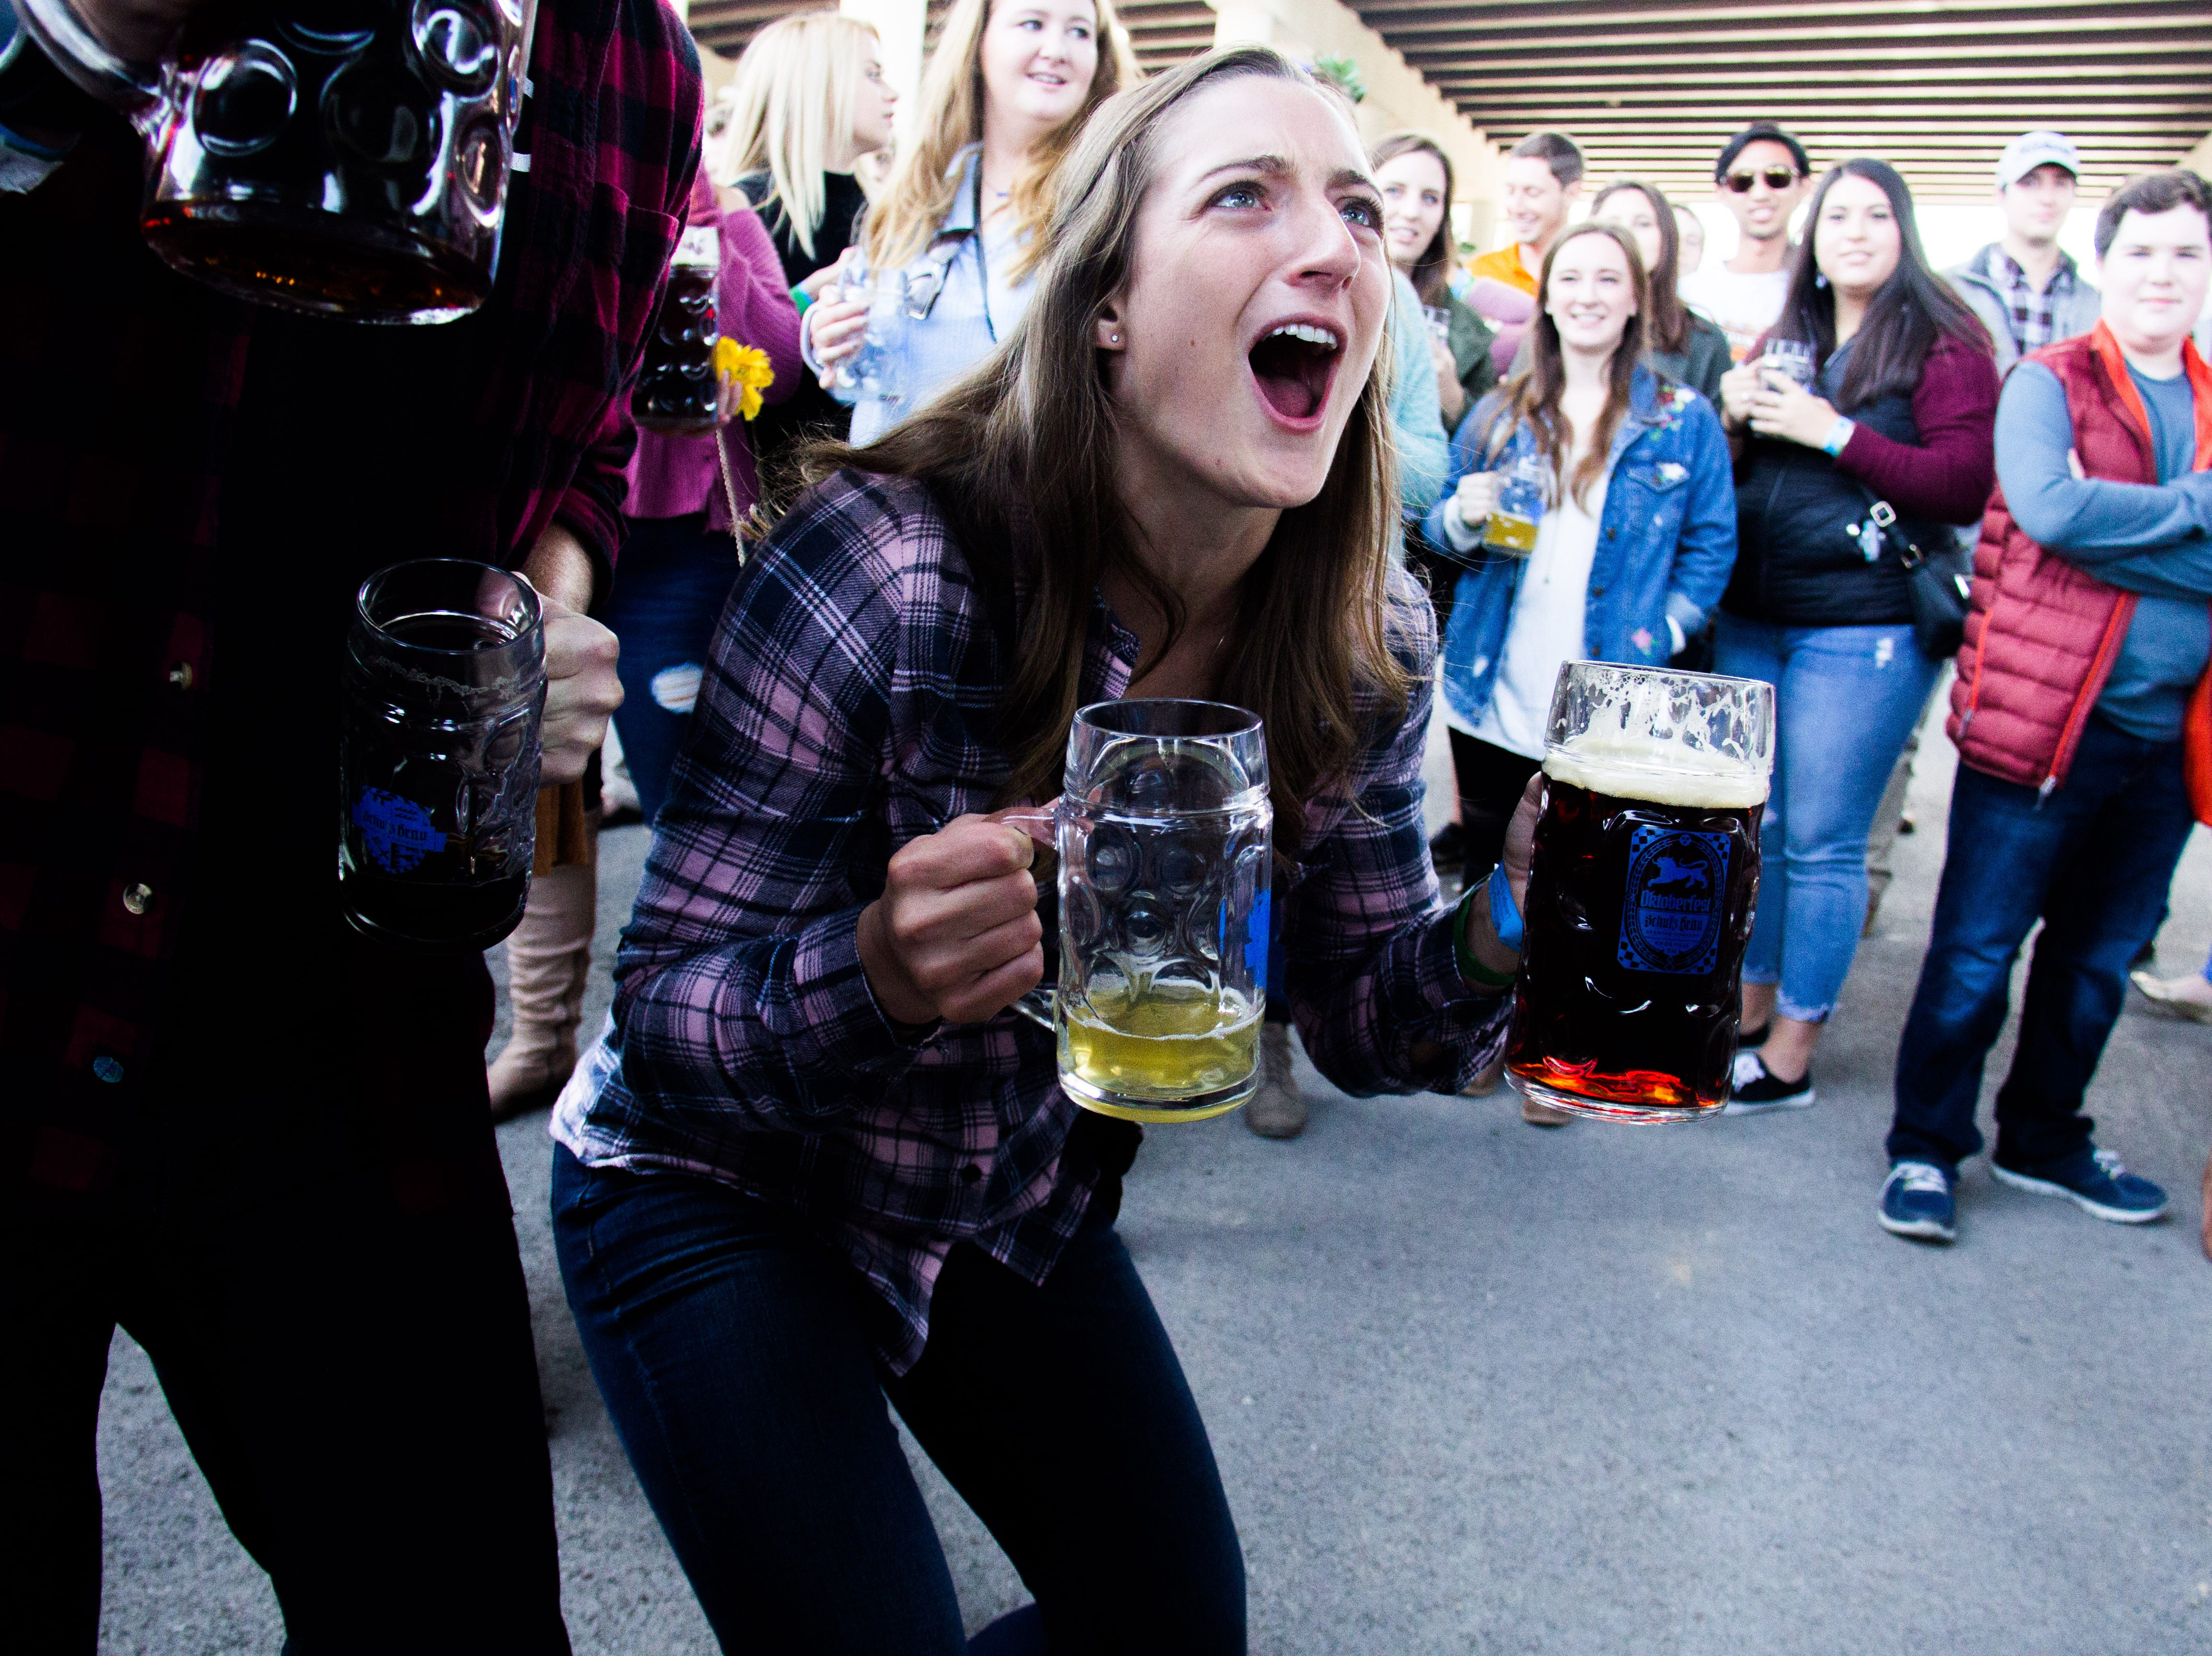 A festival-goer cheers during a steinholding contest at the inaugural Old City Oktoberfest on Oct. 13, 2018.